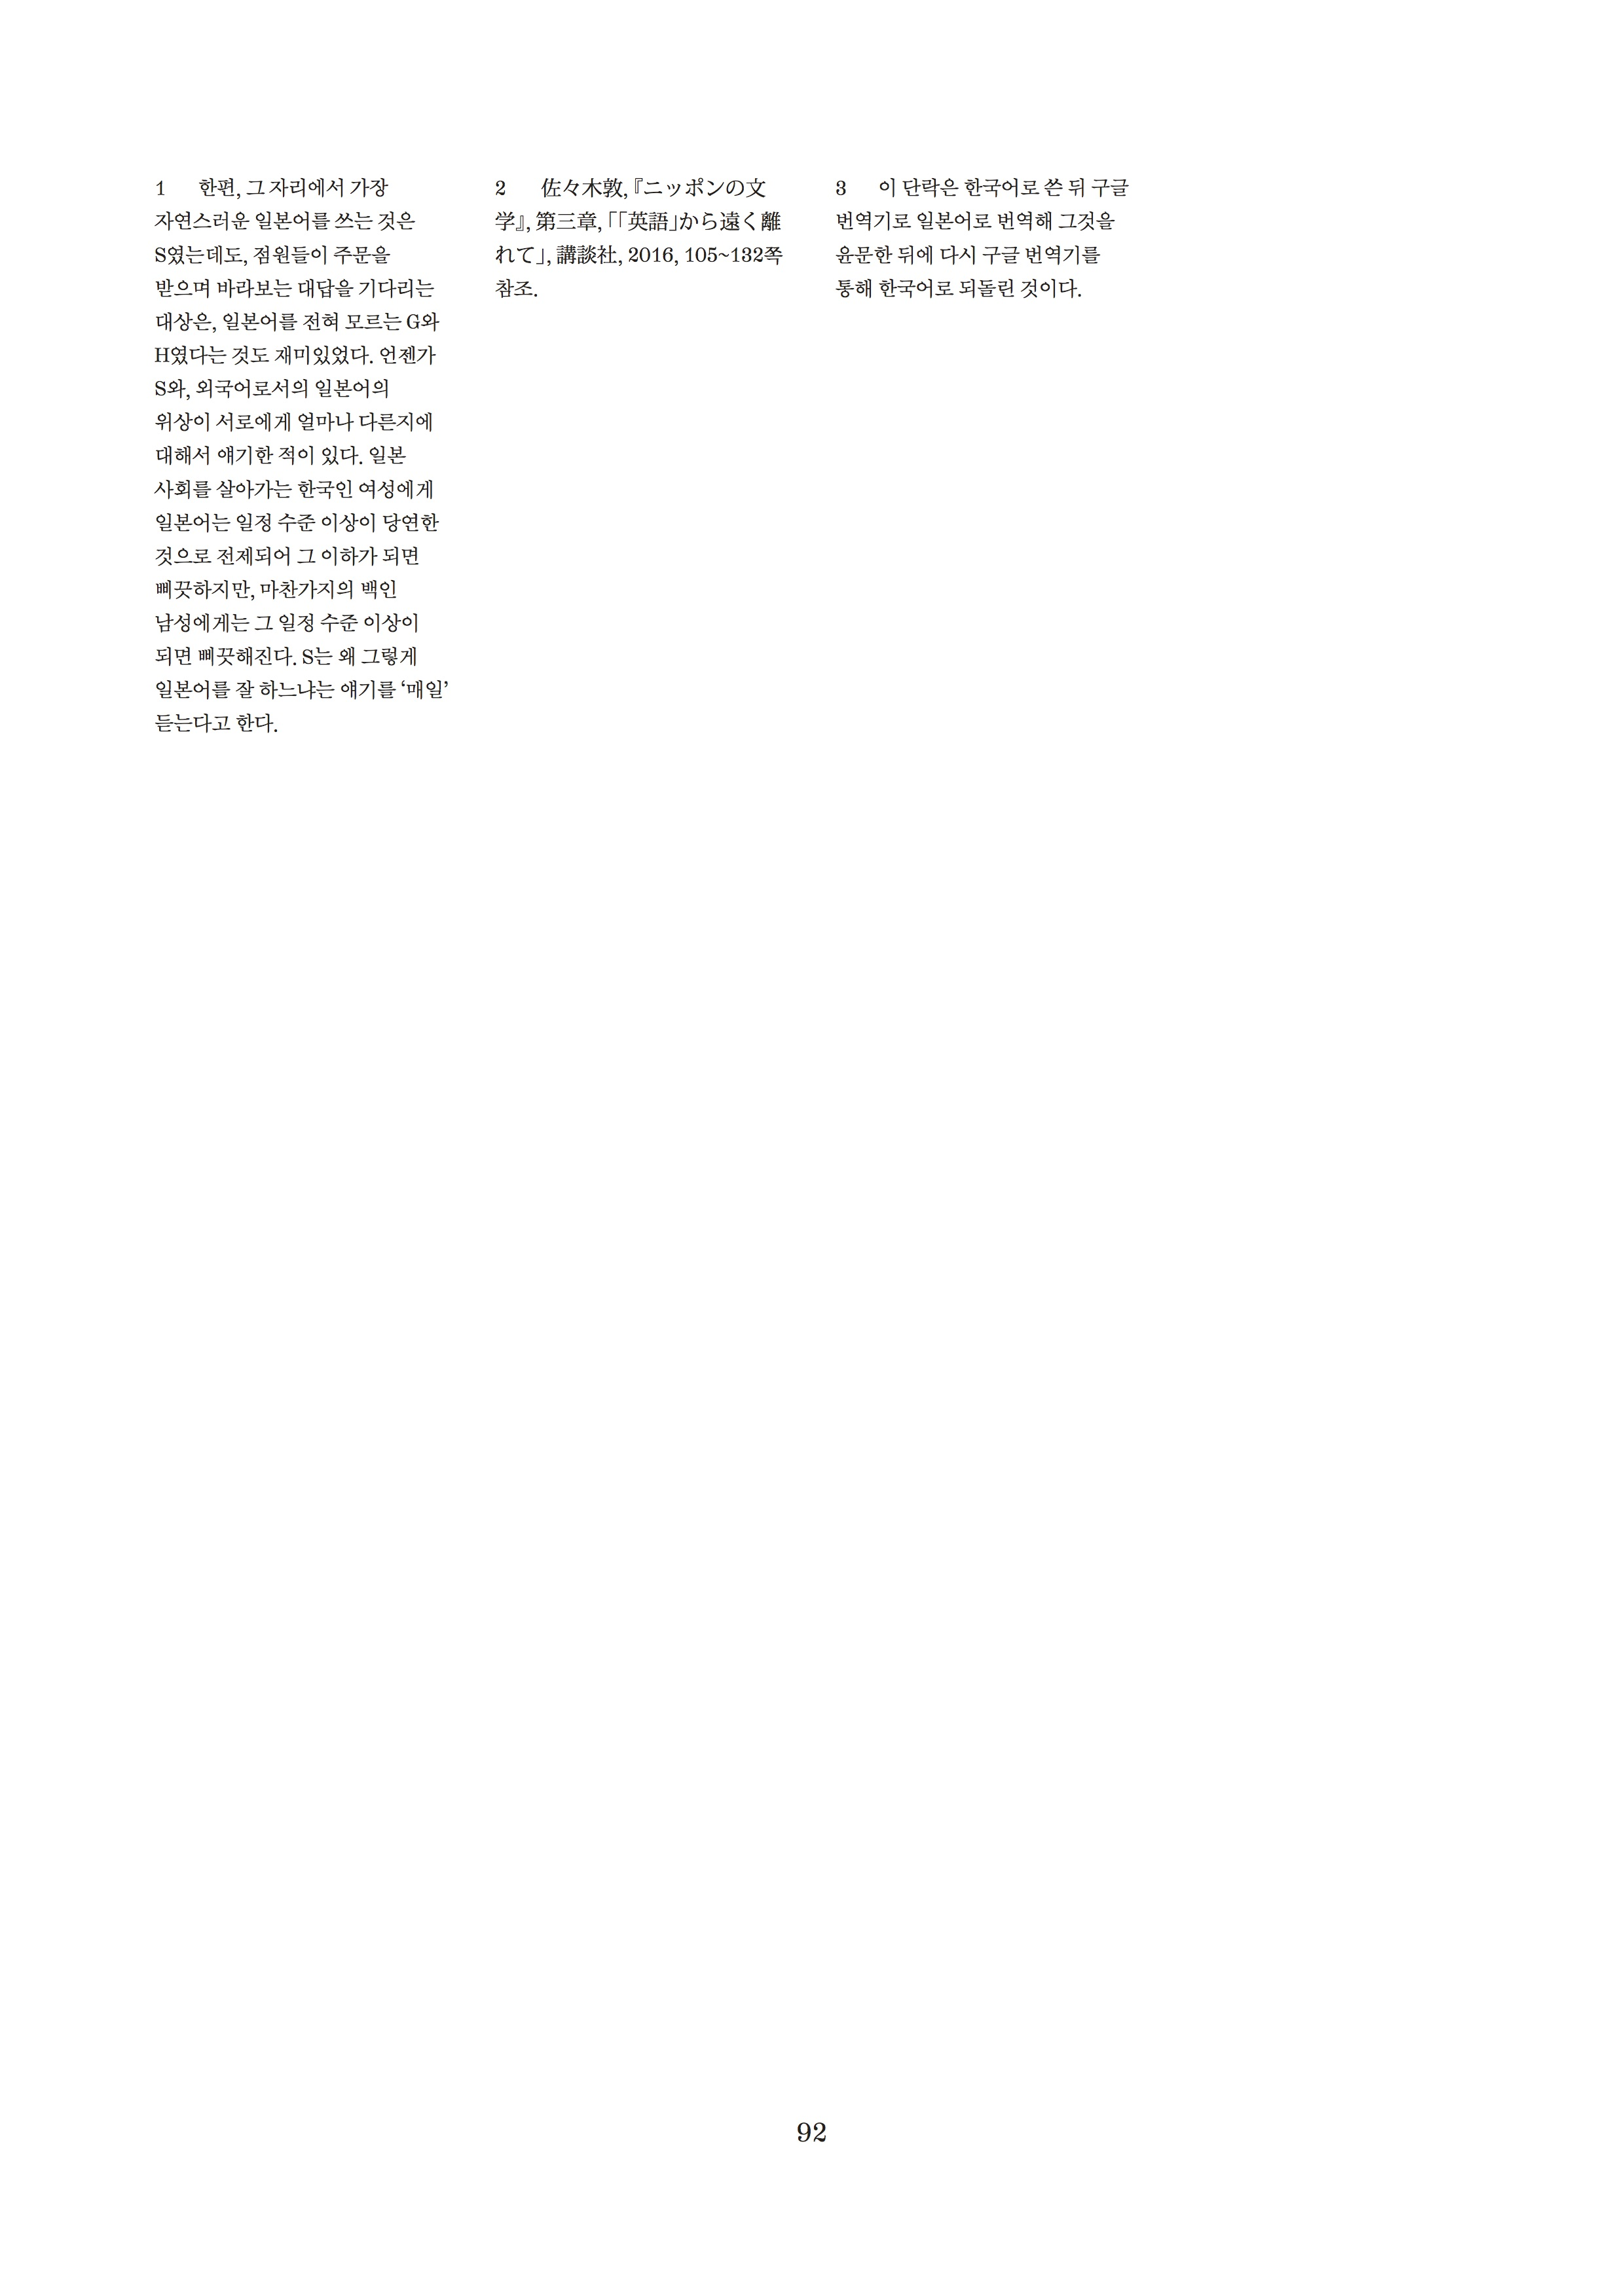 AVP_document_20_display-2_4